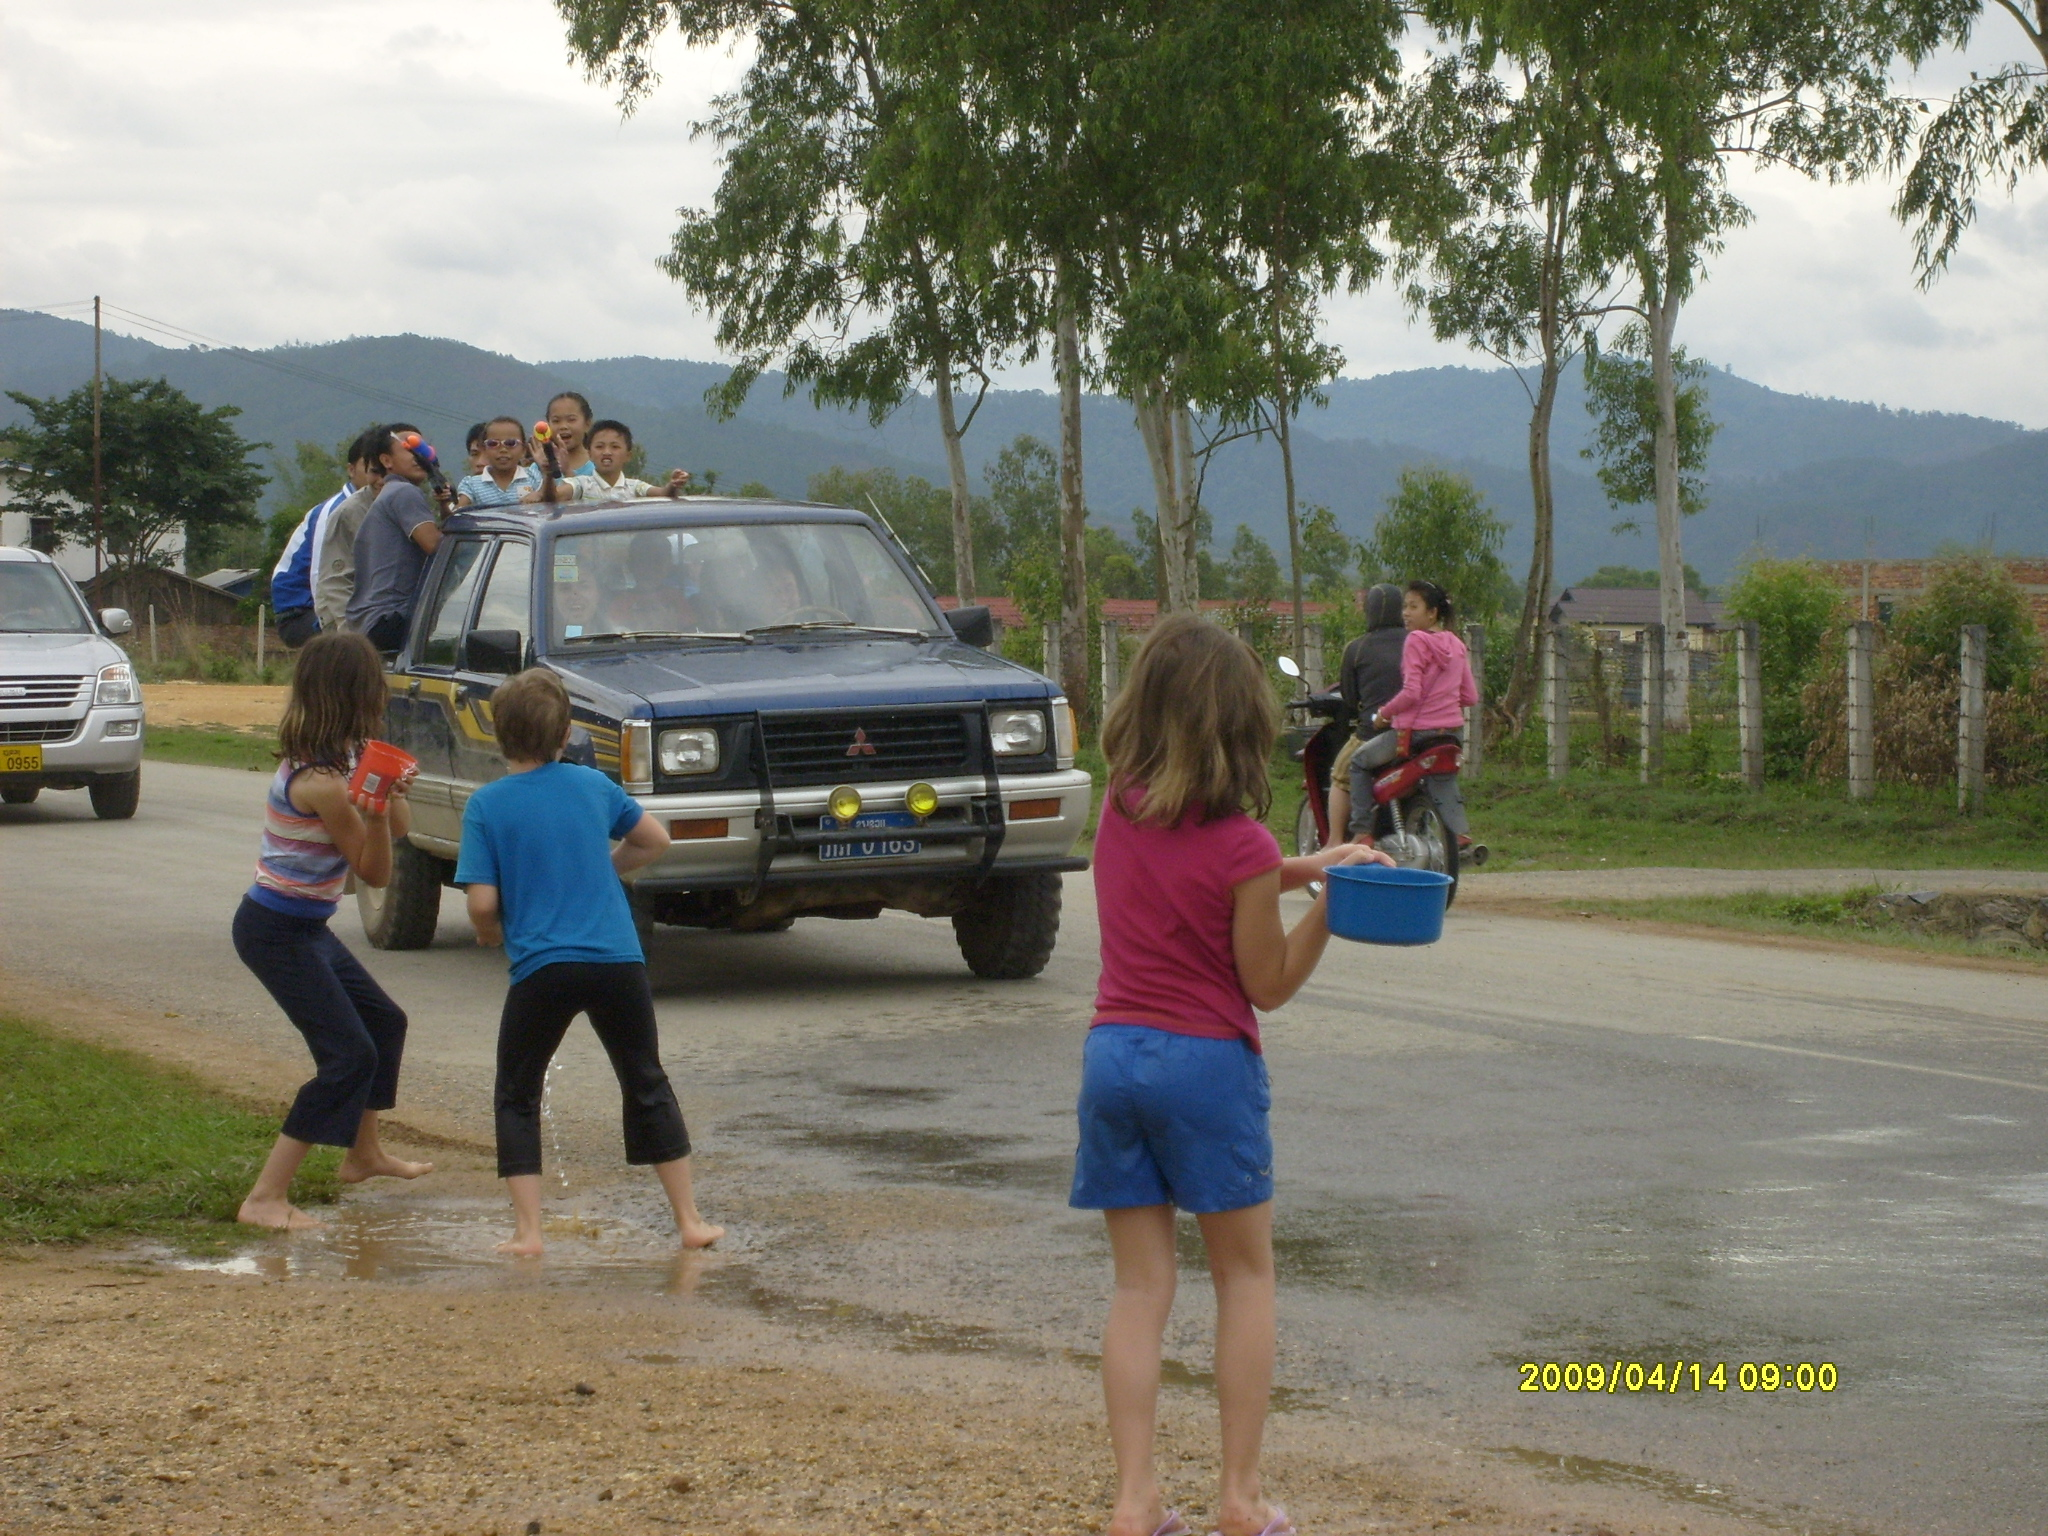 The Sankran Festival is the Festival of Water. It is celebrated for three days, during which the entire  country  participates in a nation-wide waterfight. Groups of children driving by would soak us as we, in turn, hurled water from pots and pans at them.